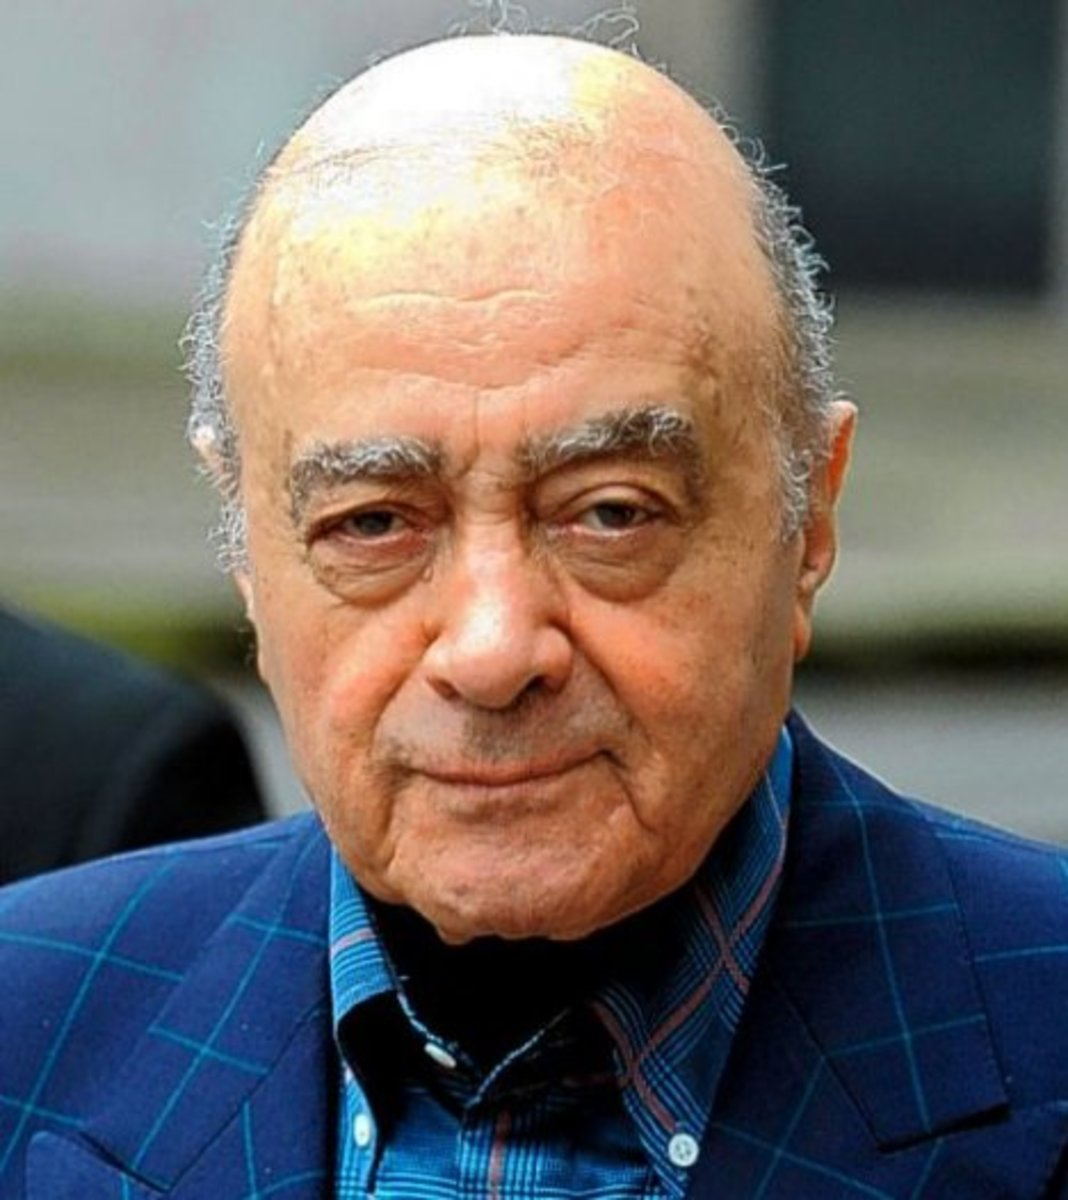 Mohamed Abdel Moneim Al-Fayed. Dodi's father and Egyptian business magnate.